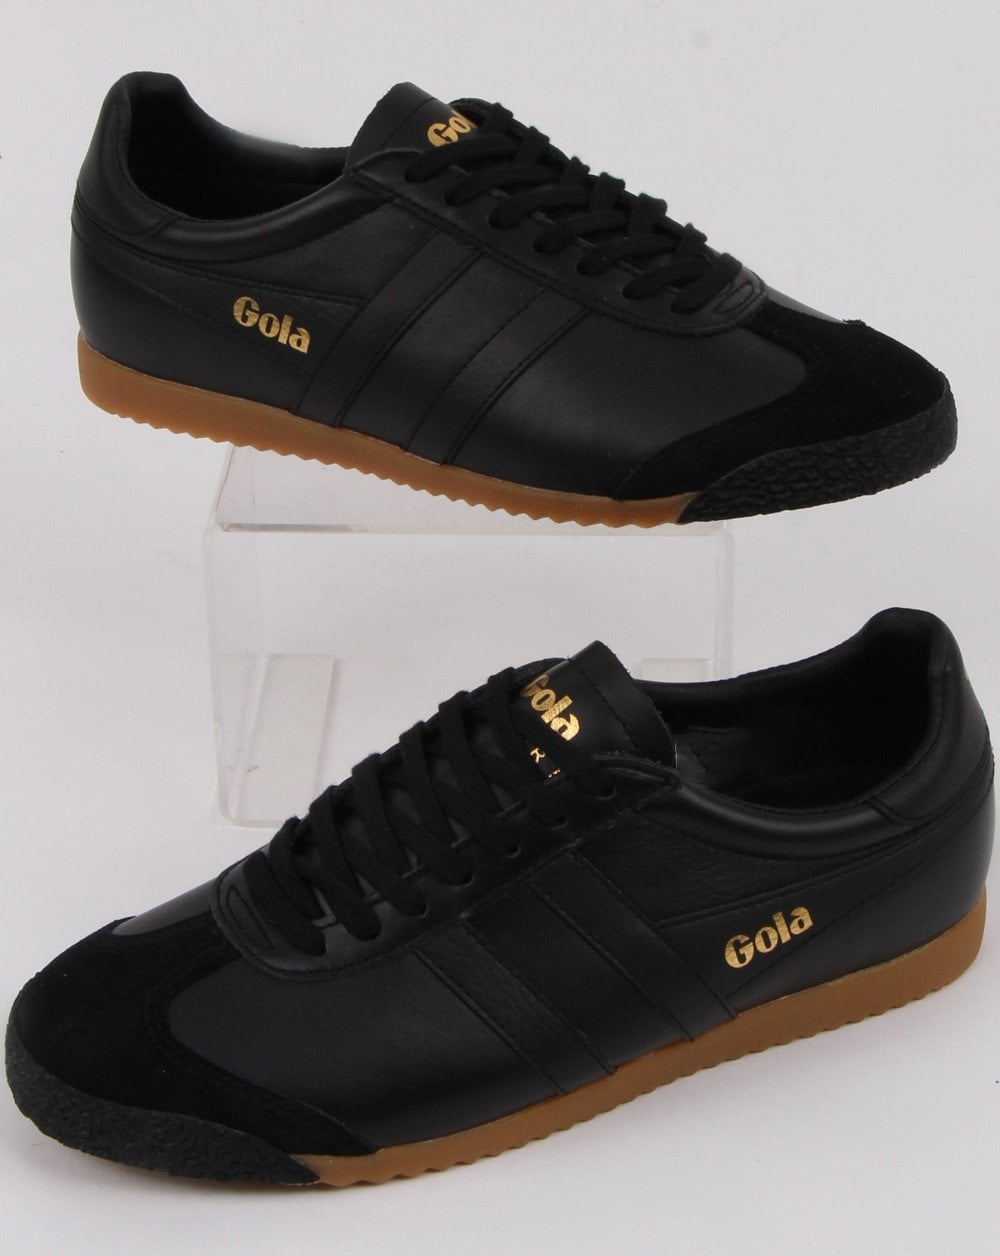 9a1015d05d9c Gola Gola Harrier 50 Leather Trainer Black black